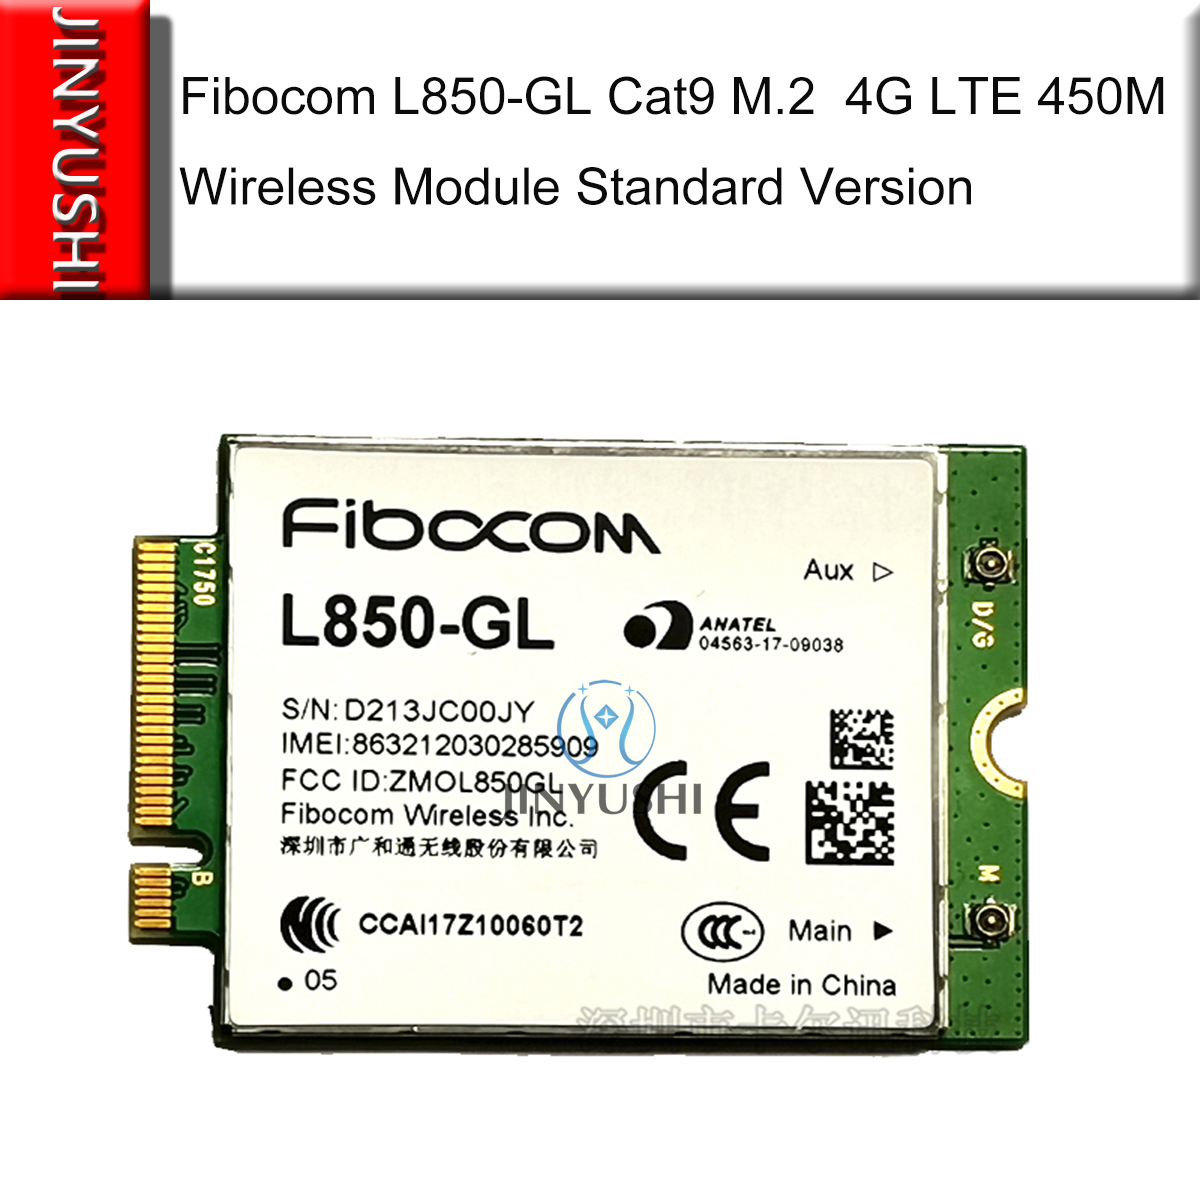 JINYUSHI For New Original Fibocom L850-GL  M.2 LTE-FDD/LTE-TDD/WCDMA 4G Cat9 450M  Wireless Module  Free Shipping